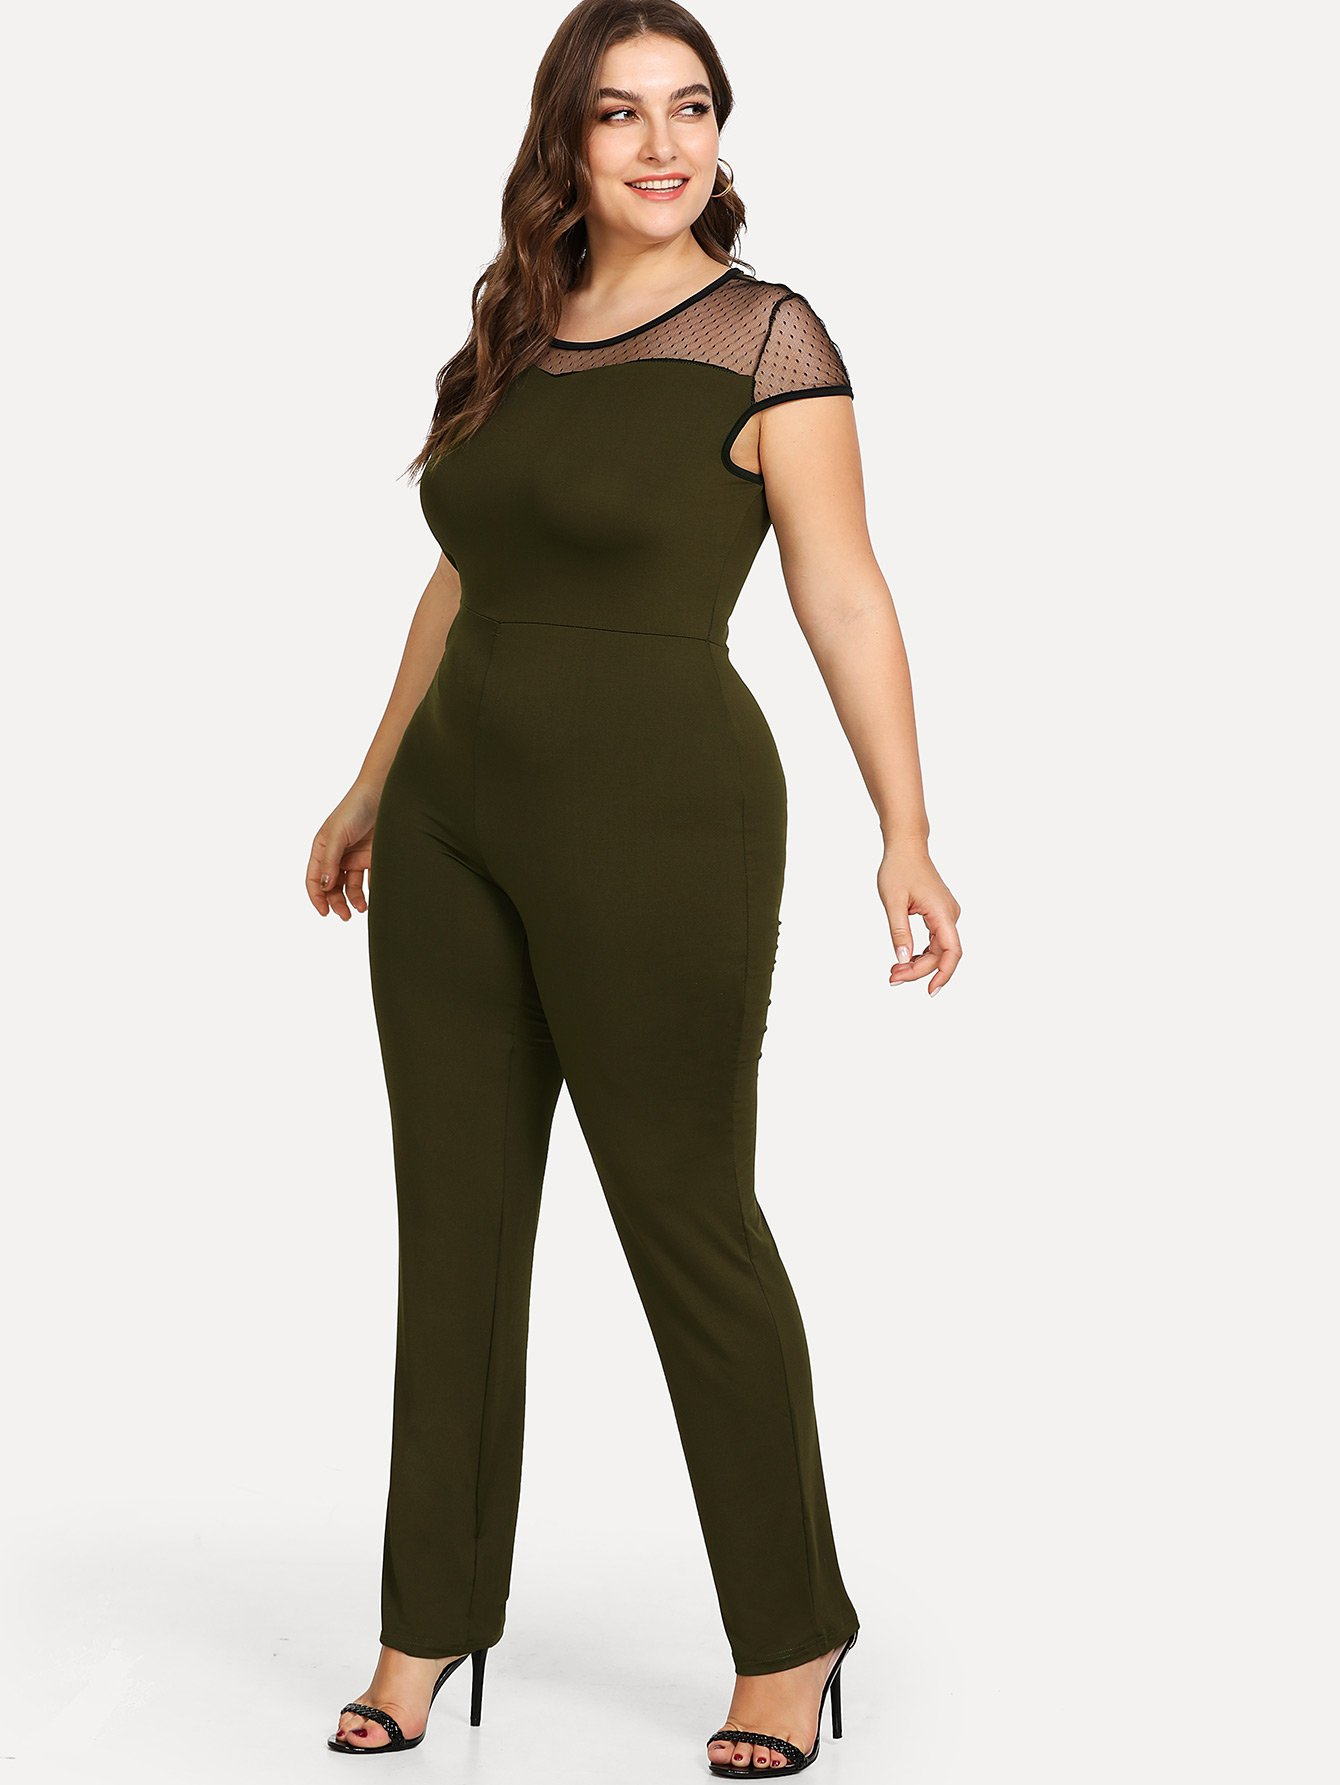 Contrast Mesh Sheer Detail Jumpsuit cold shoulder contrast sheer mesh jumpsuit